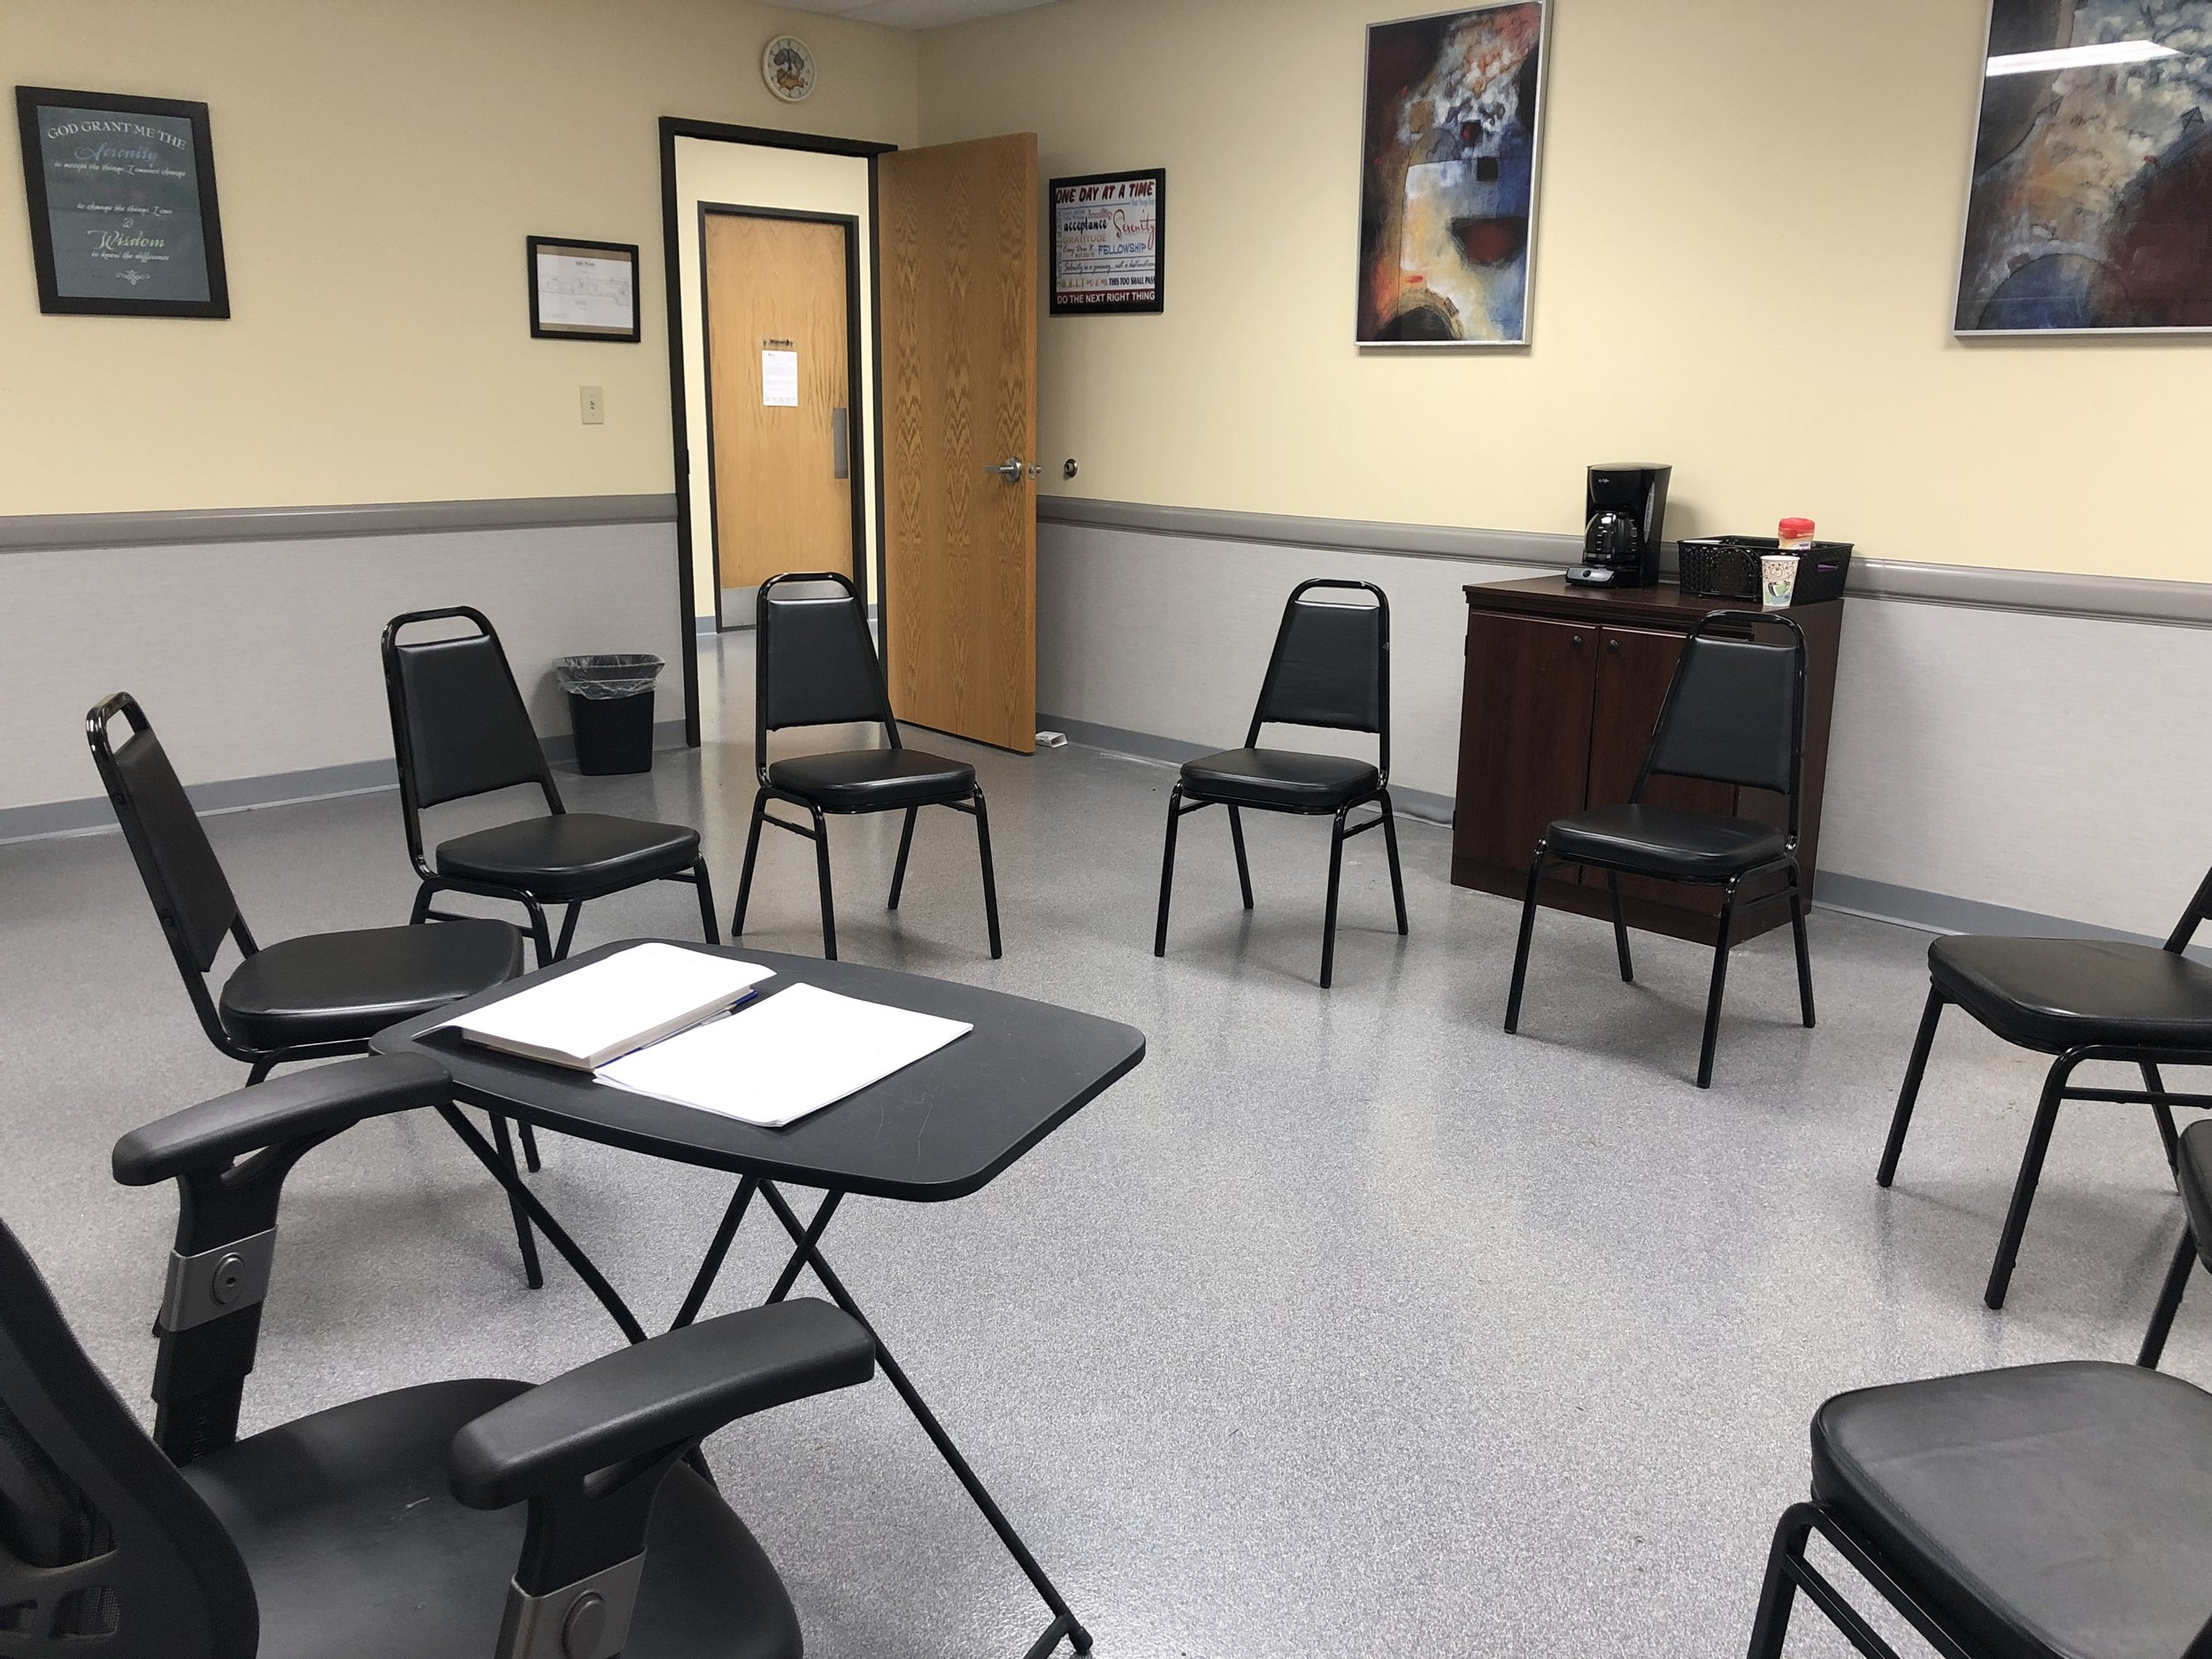 Group Therapy Room - Milford